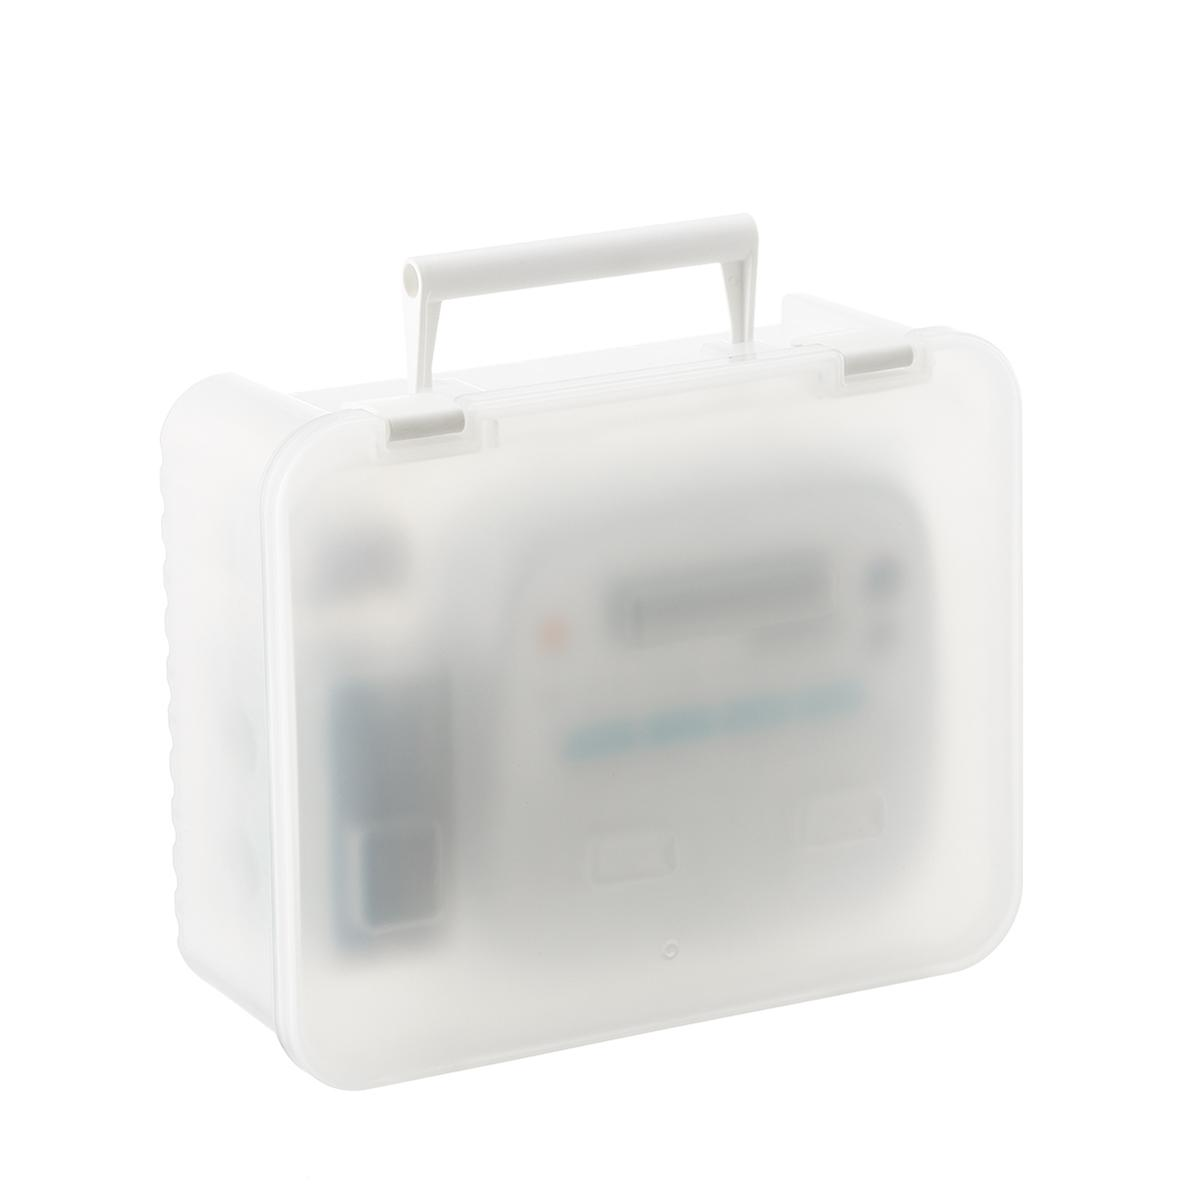 Brother Label Maker with Carrying Case